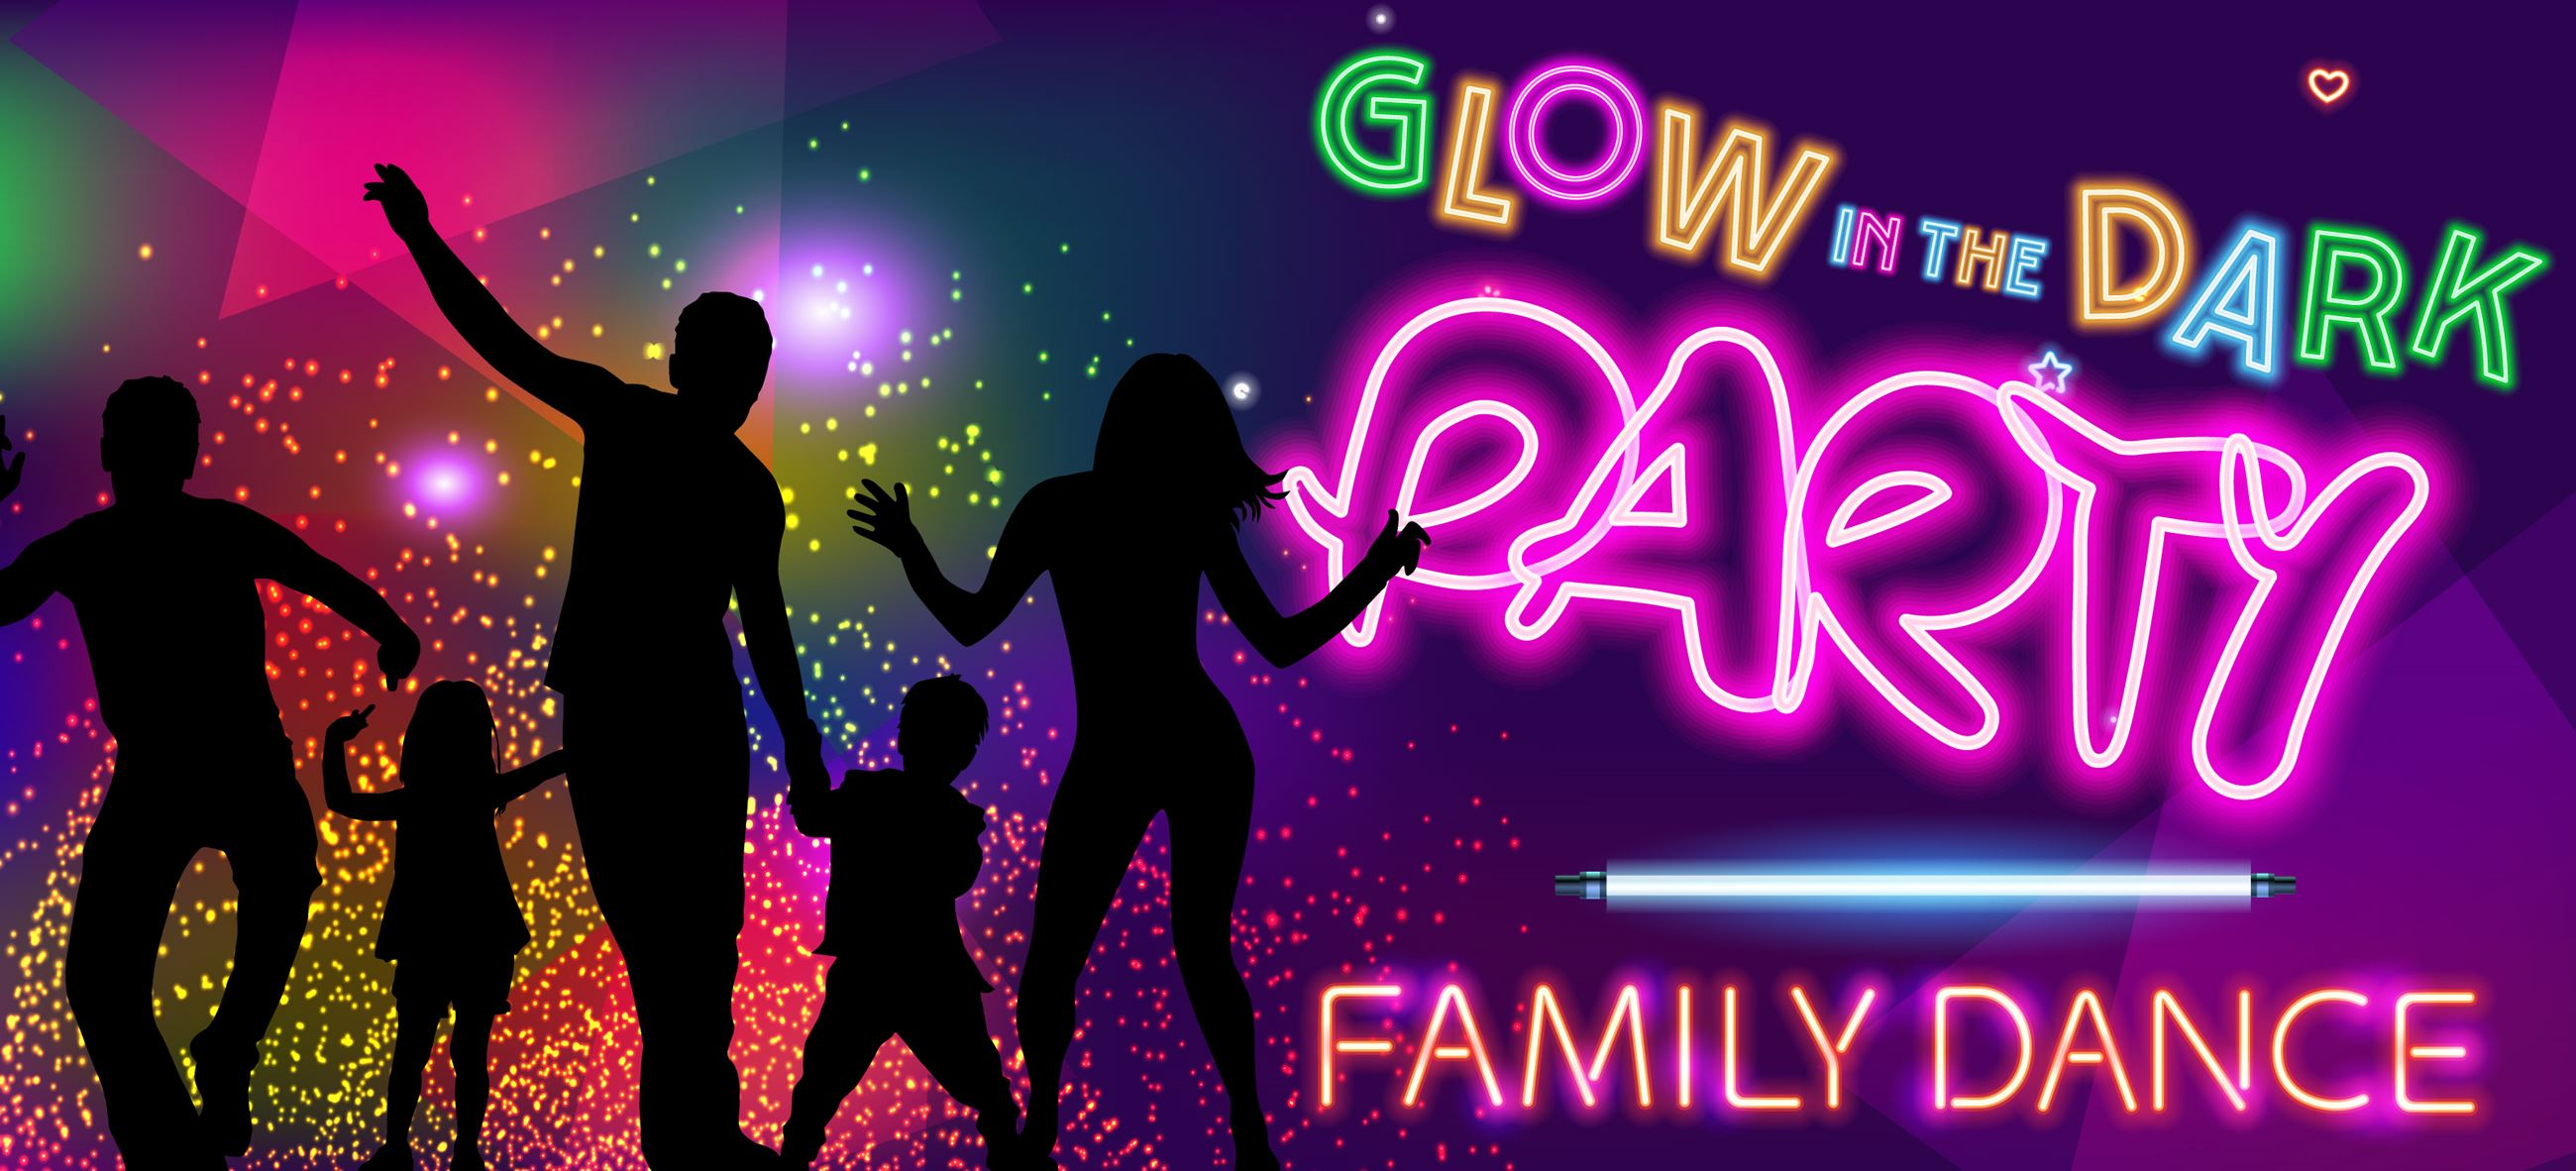 Family Dance Glow in the Dark Party